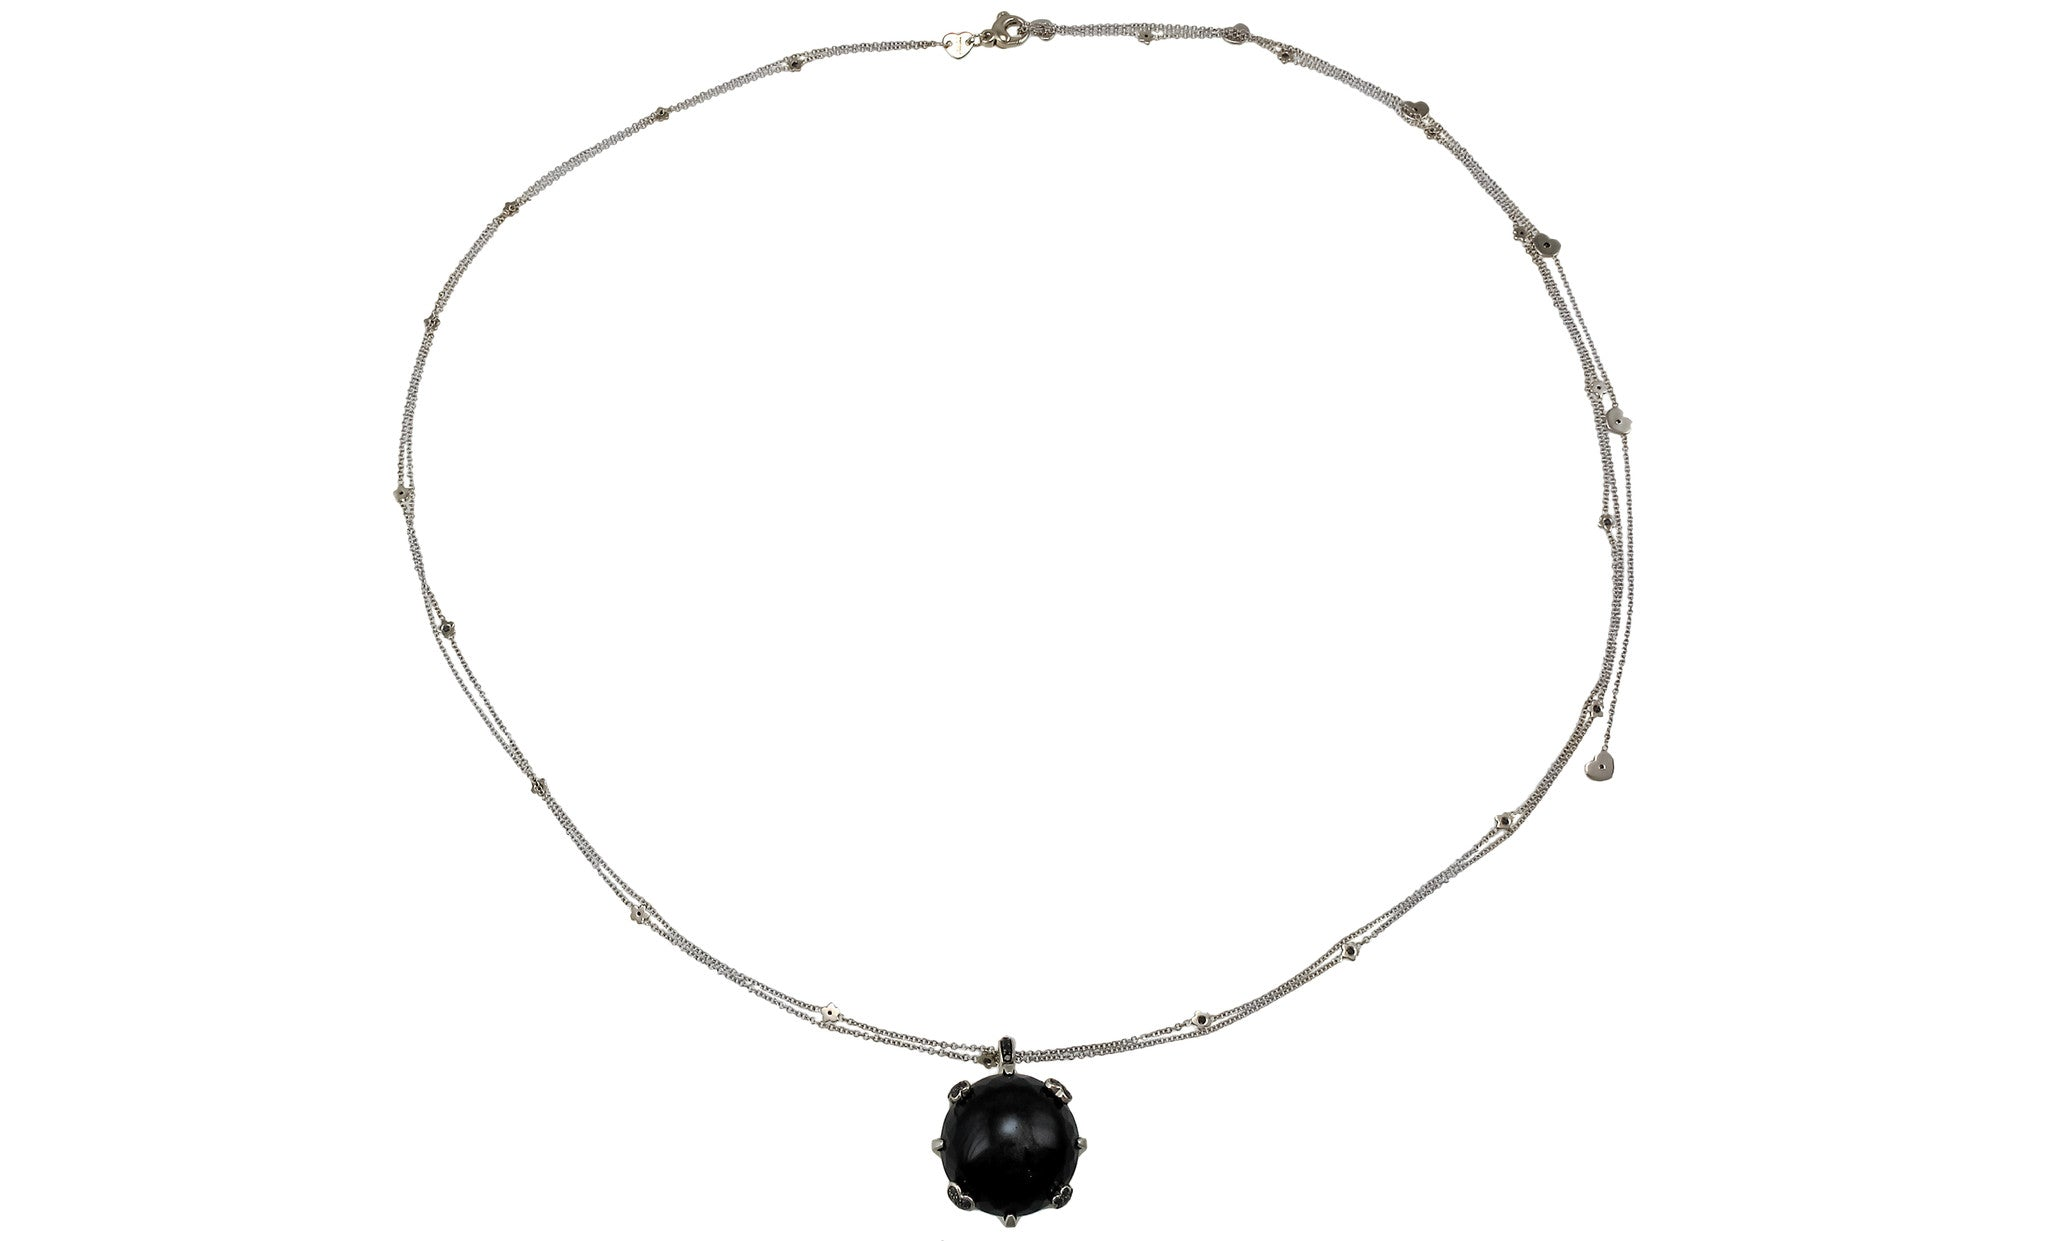 Sissi18K White-Black Gold Round Necklace (Gold: 24.68 g; Diamonds: 1.97 ct. twd./ Sapphires: 0.06 ct. tw. / Onyx: 10.81 G) - Chain Length: 37 in